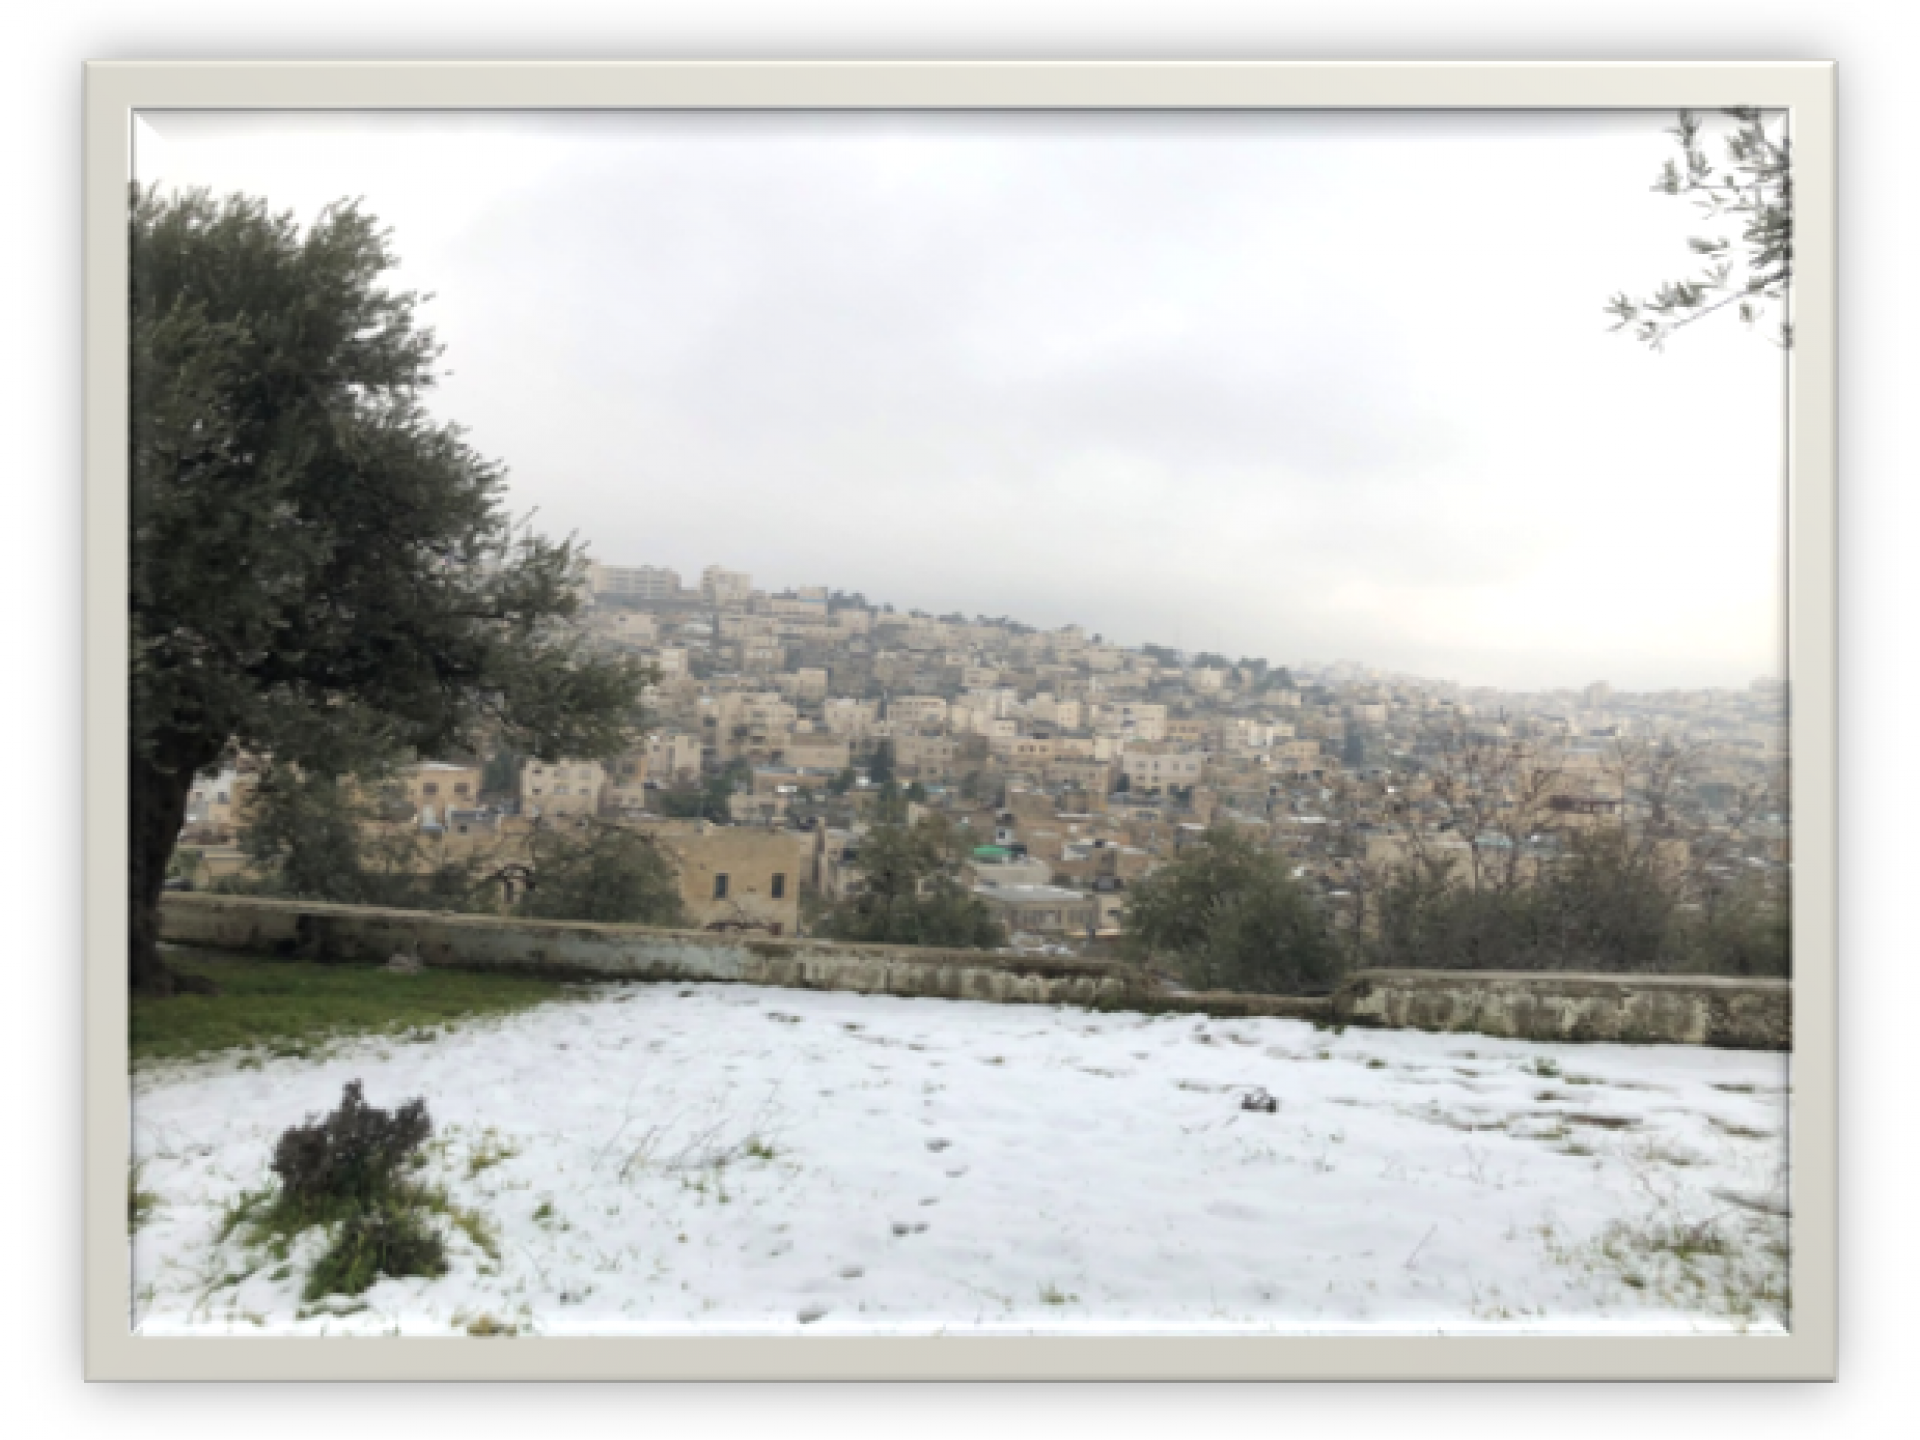 The view from Issa's balcony to Hebron H2